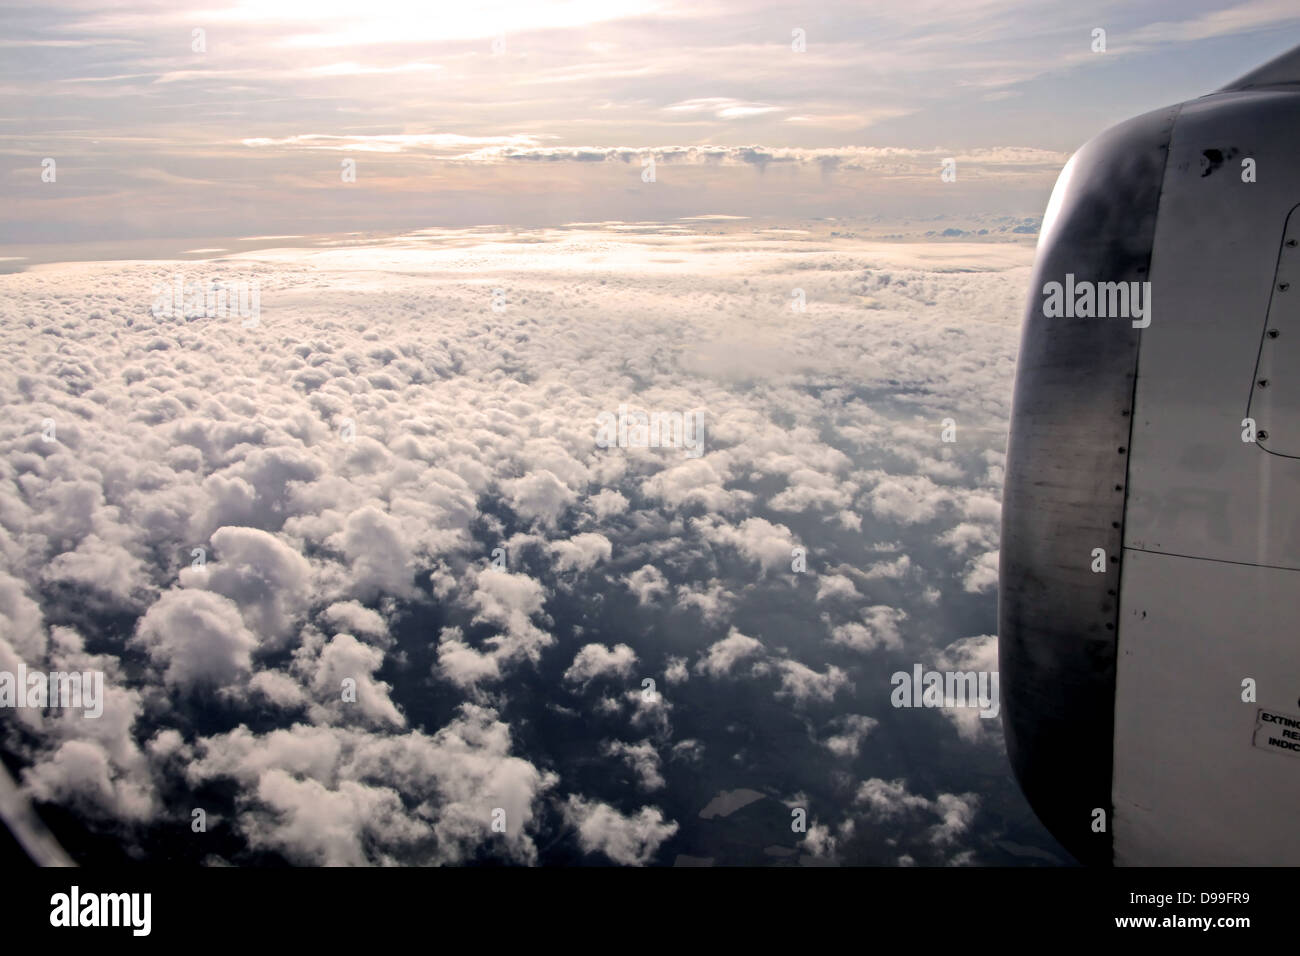 aerial photography of clouds and aircraft engine in the evening - Stock Image